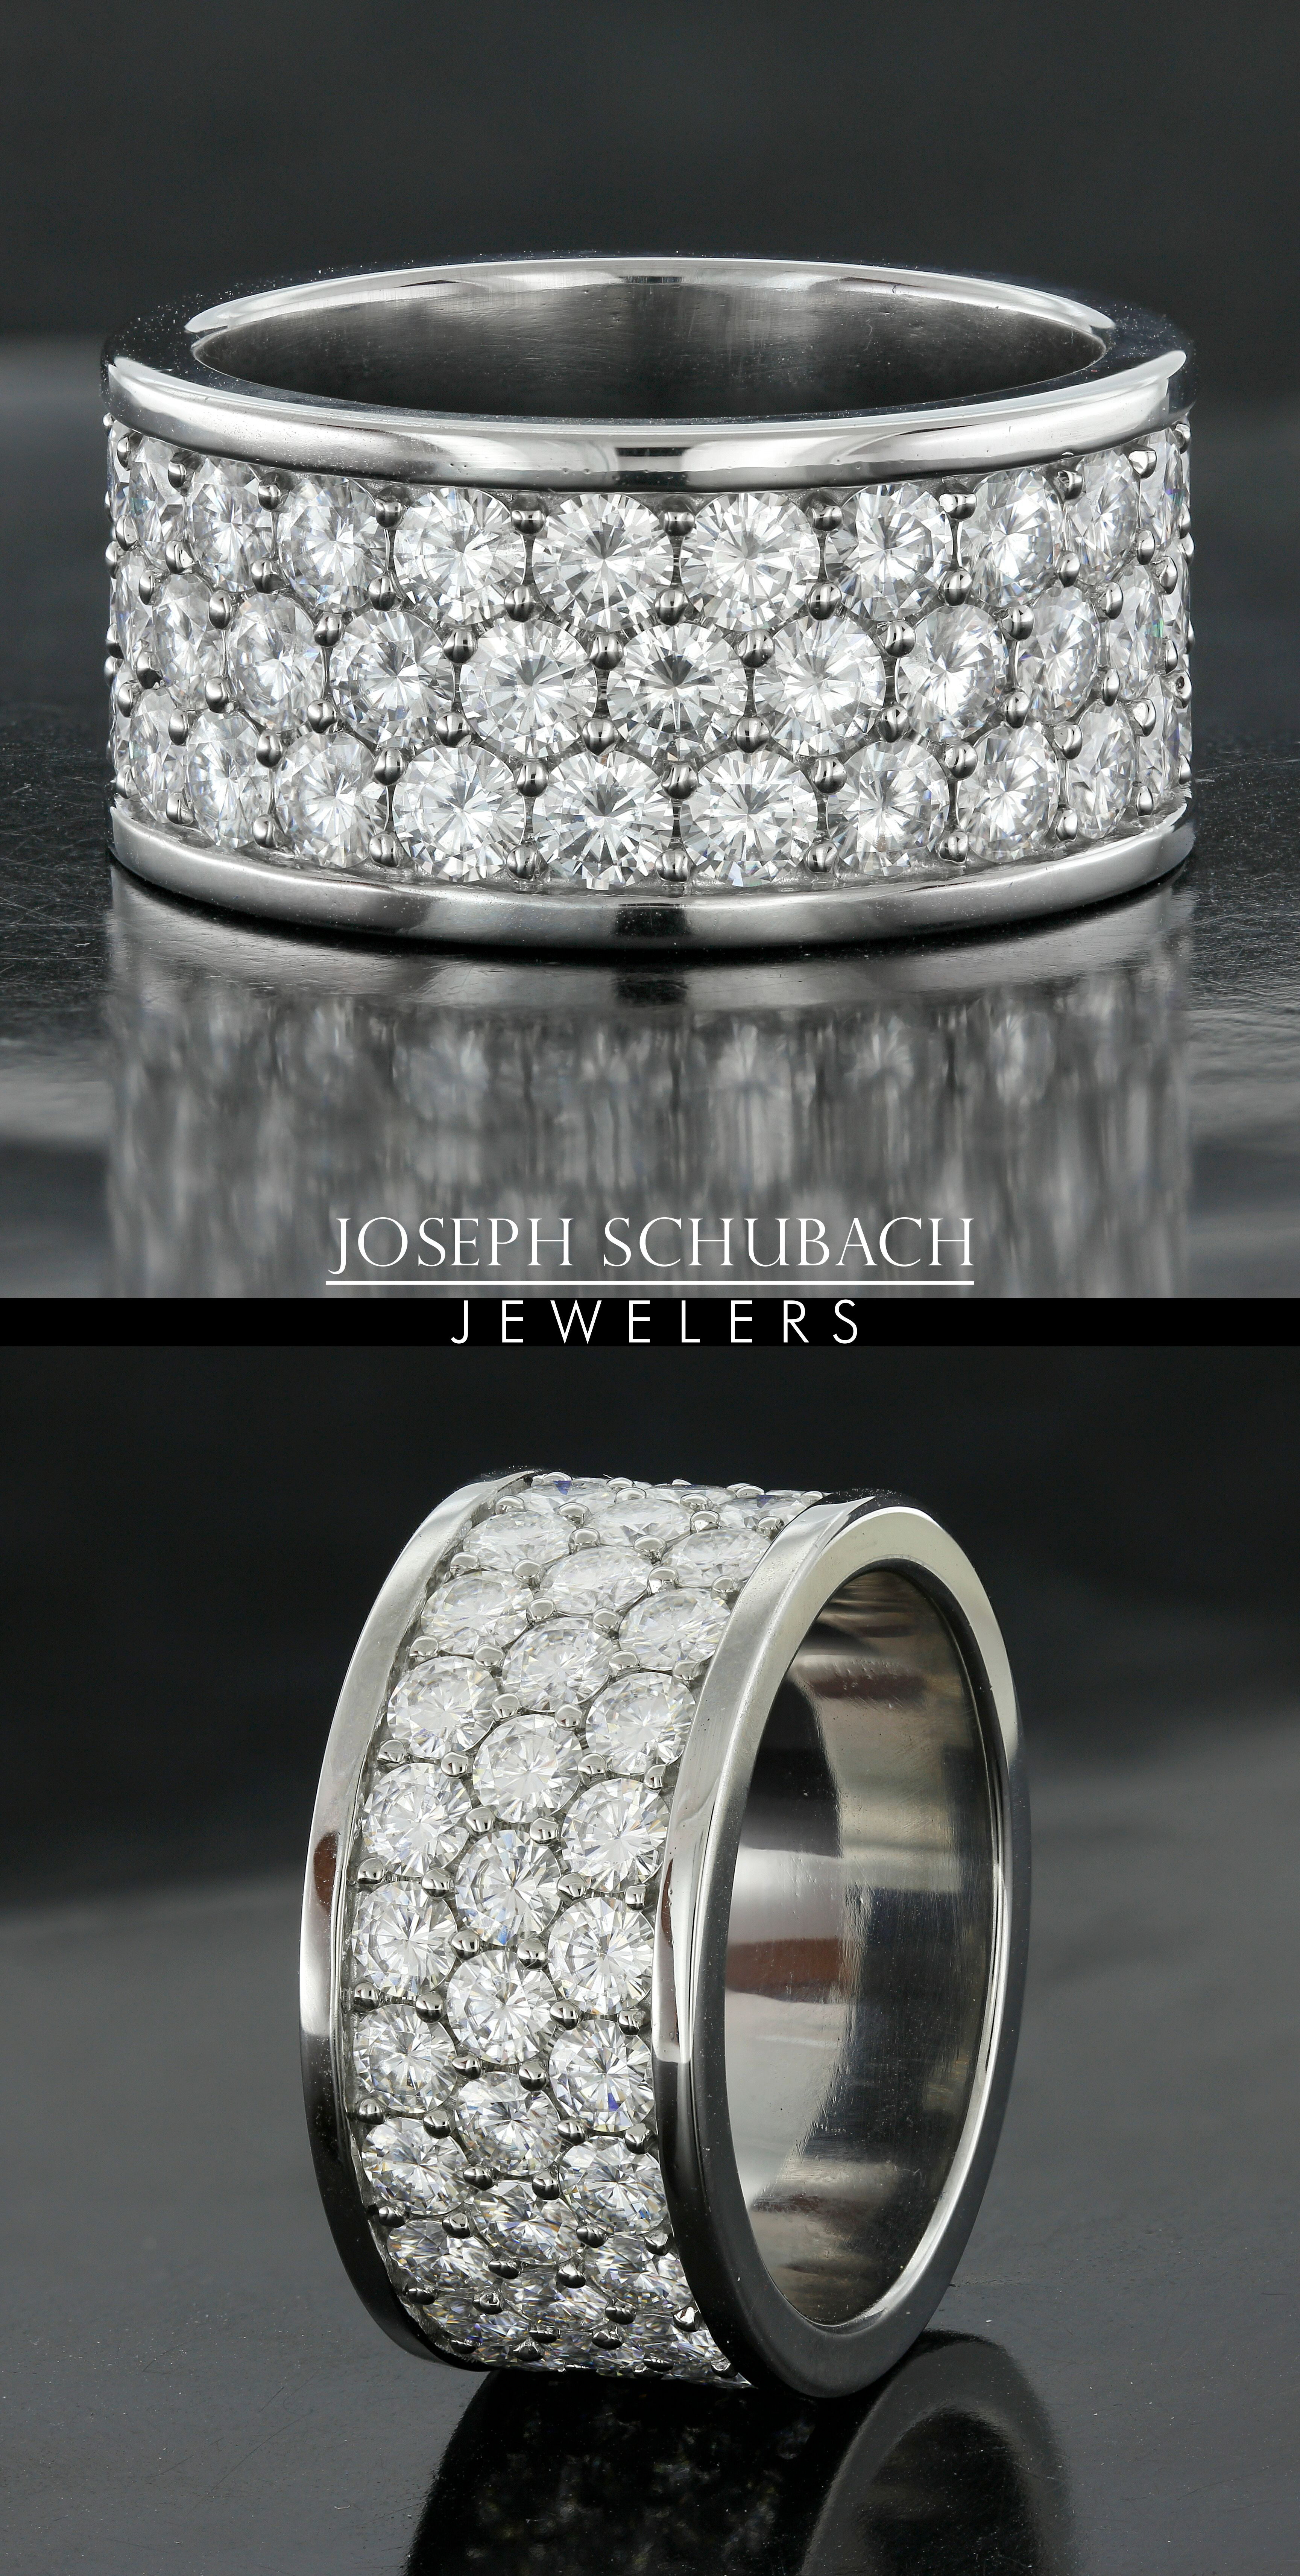 Stainless Steel Ring with Diamonds